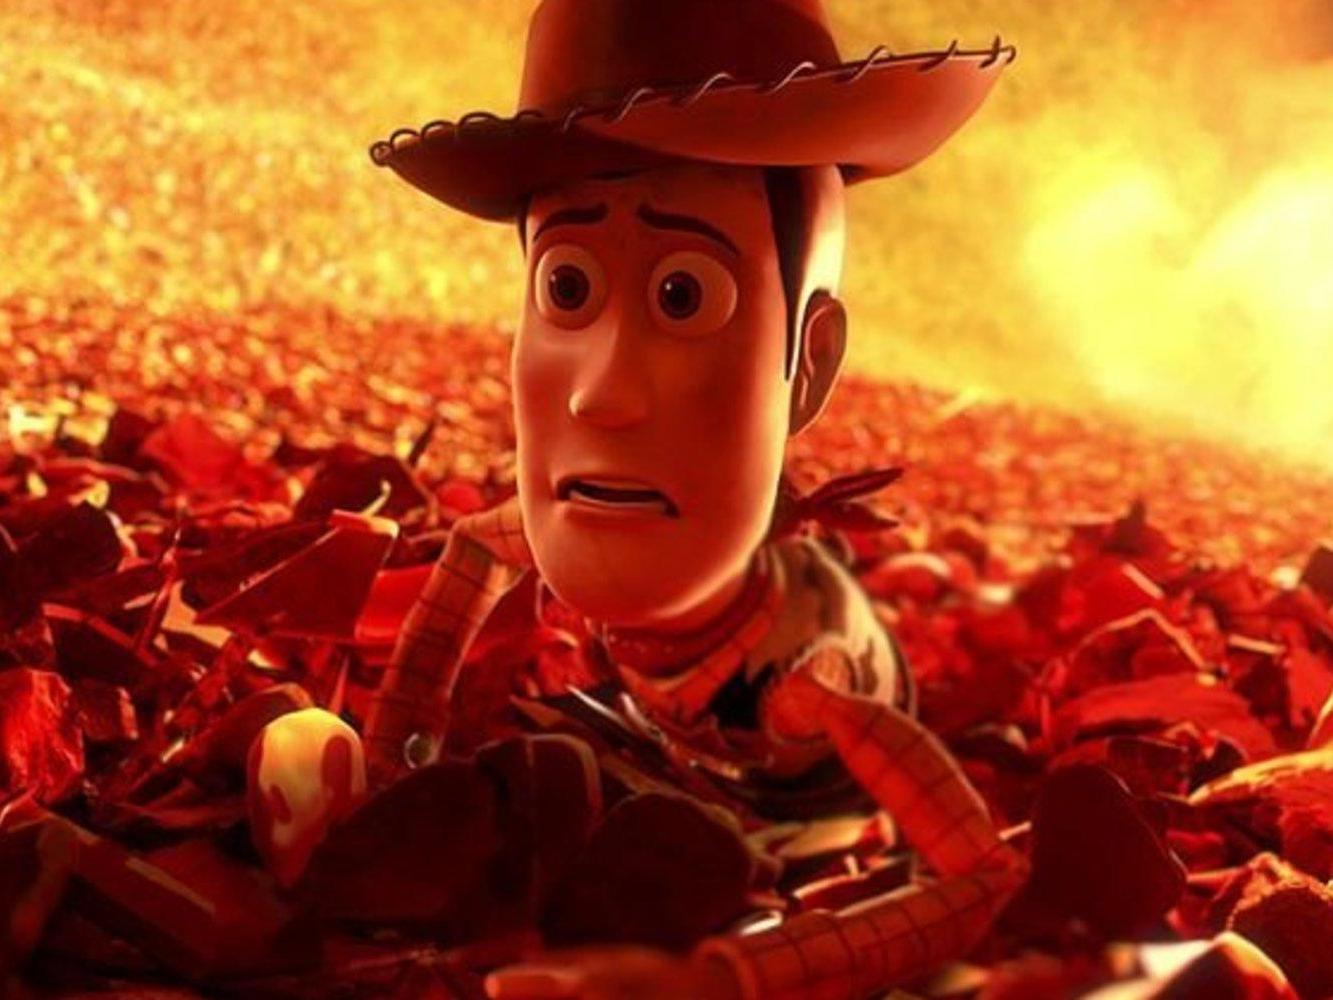 0ff8d784 Toy Story 4: Tom Hanks says final scene will mark 'moment in film history'